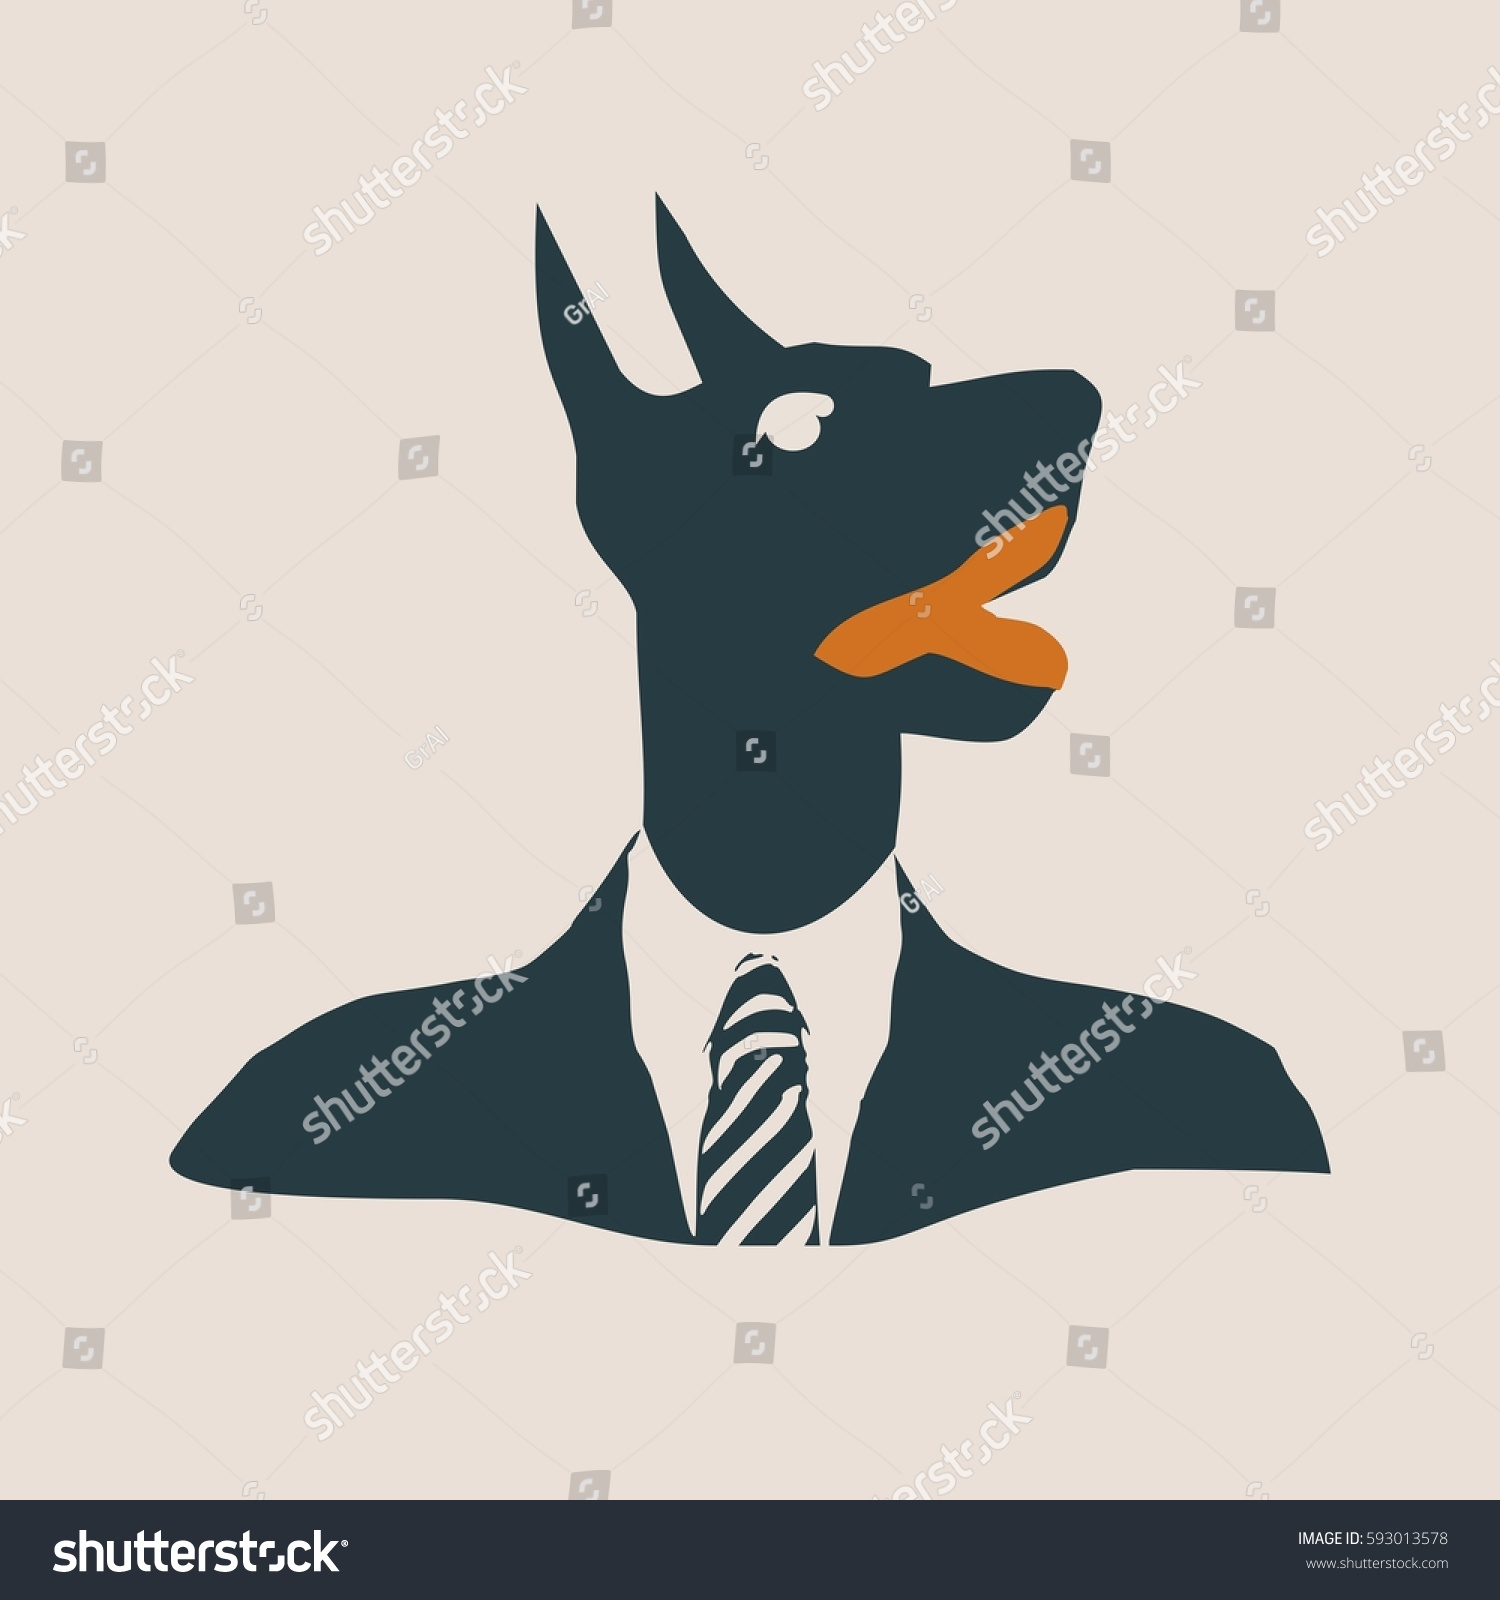 doberman dog dressed up in black suit silhouette of a dog head vector illustration